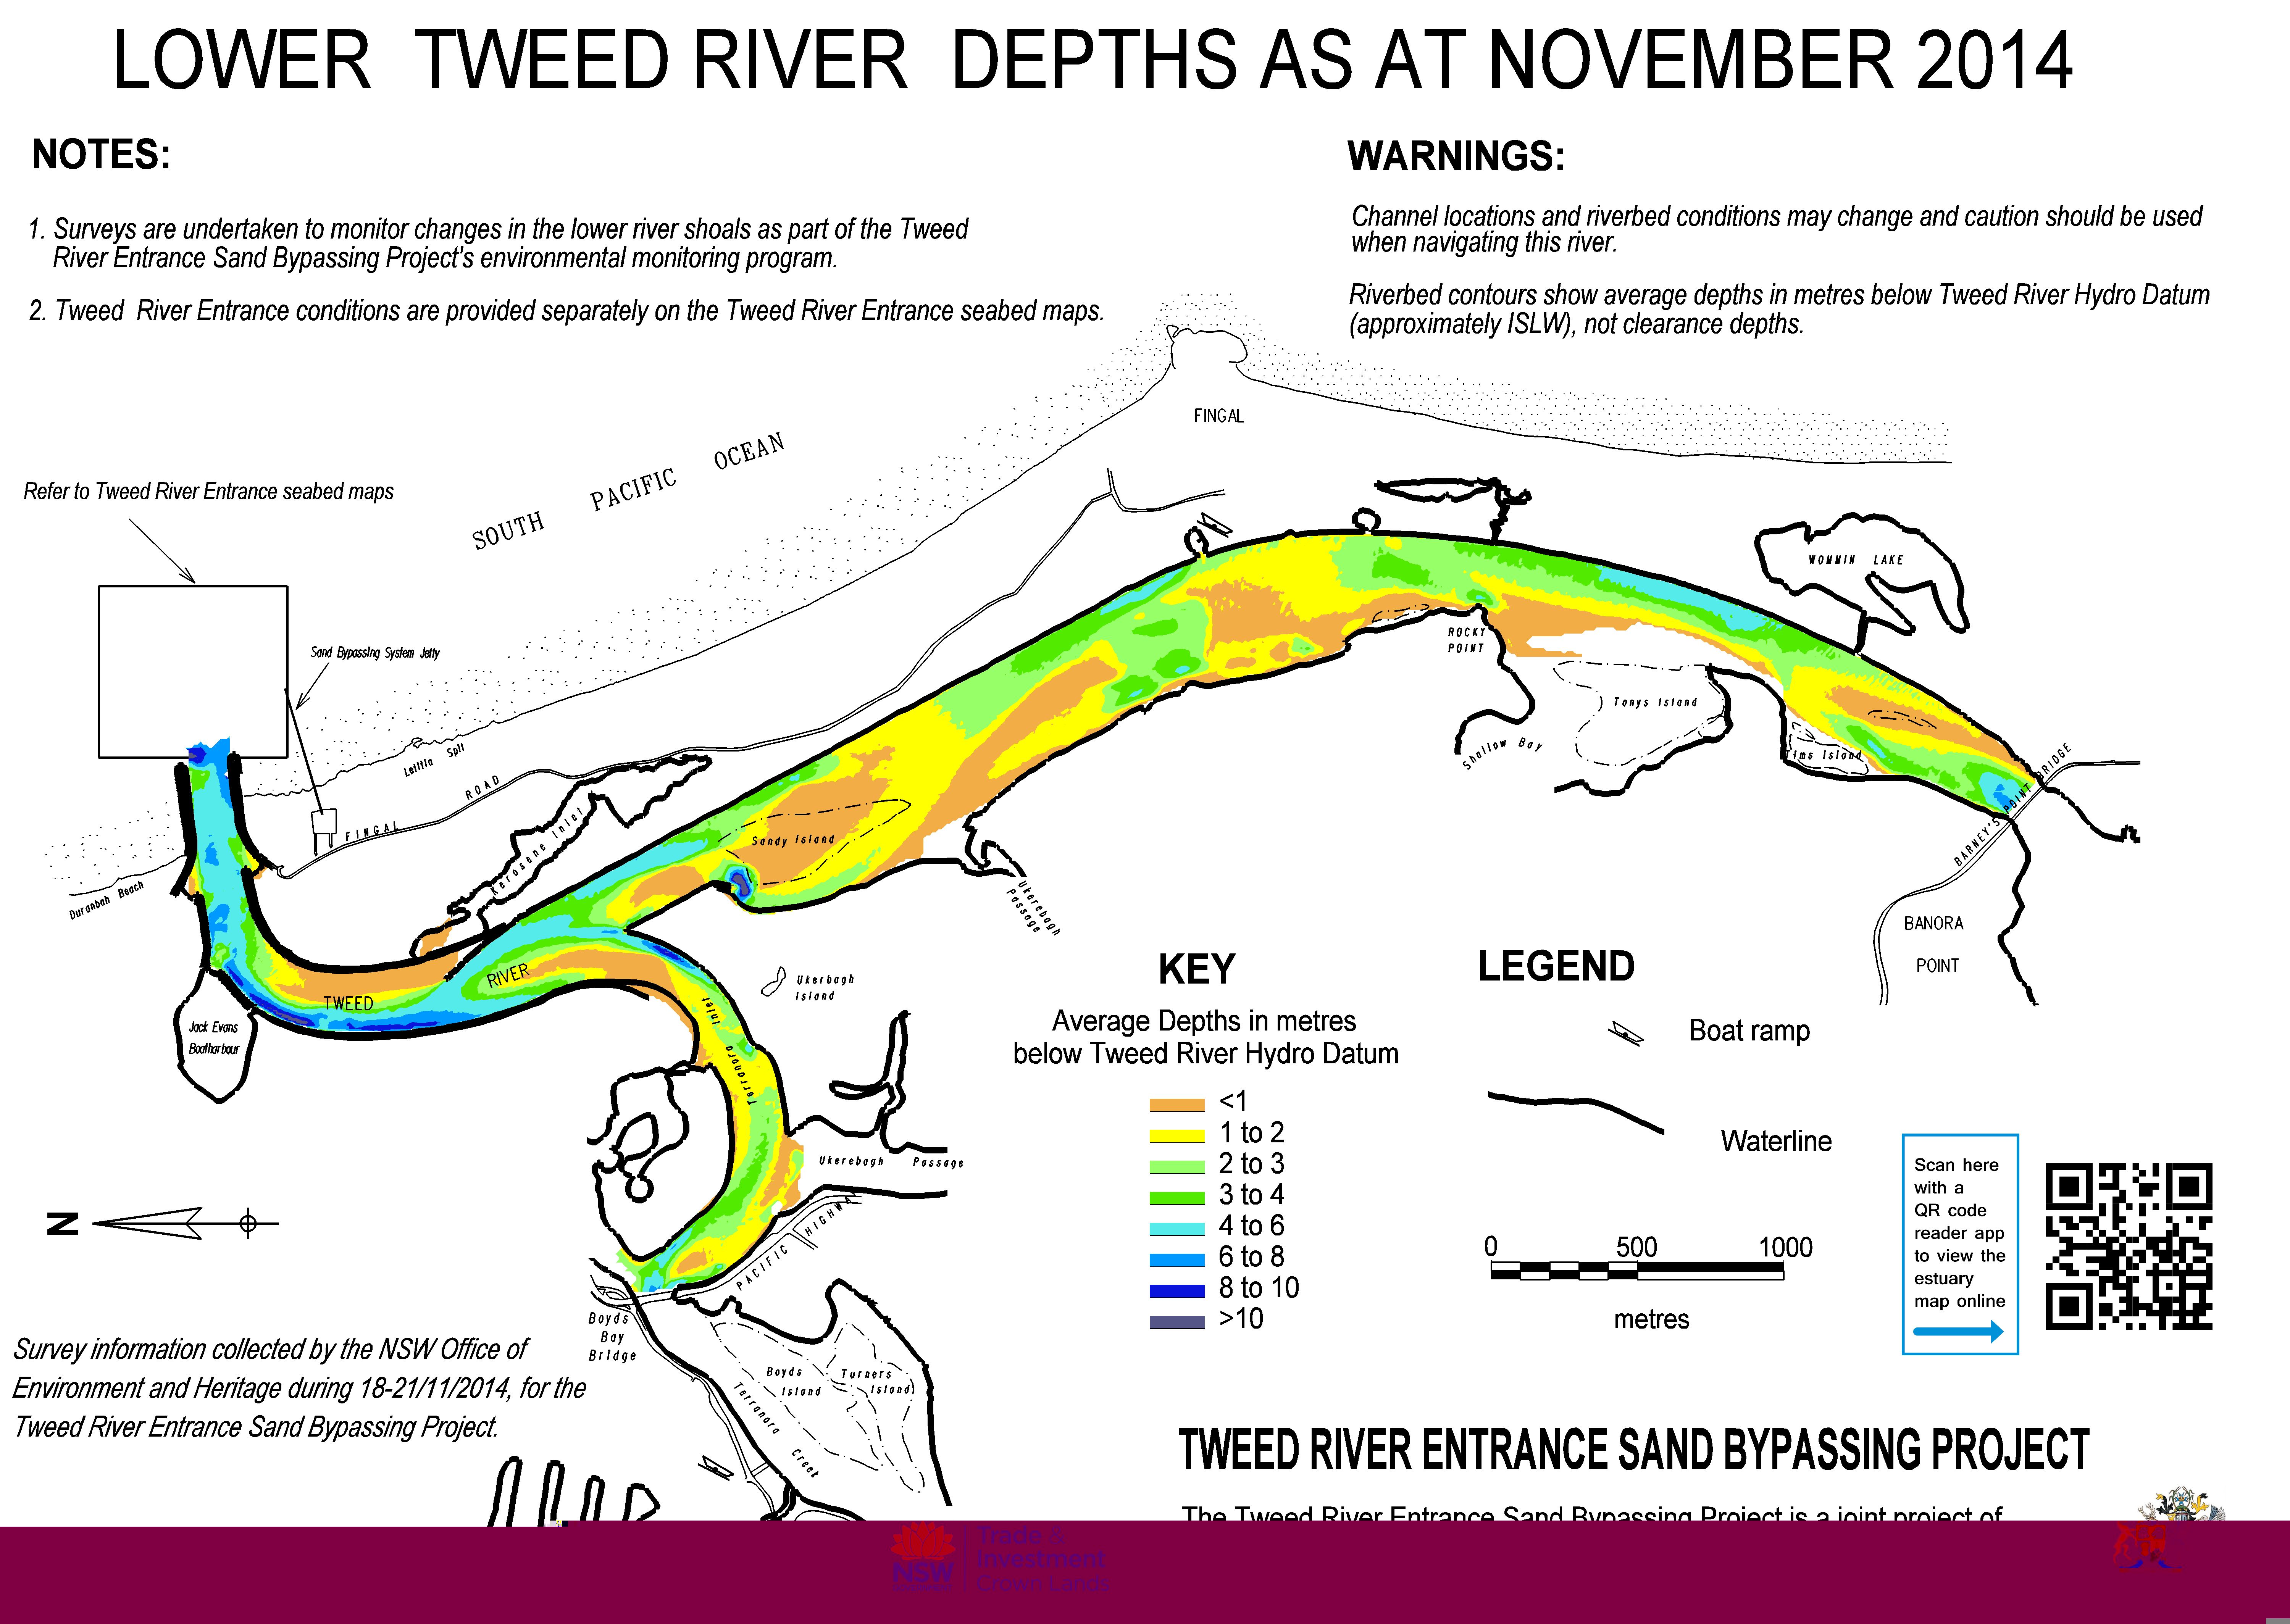 Lower Tweed River Depths - November 2014